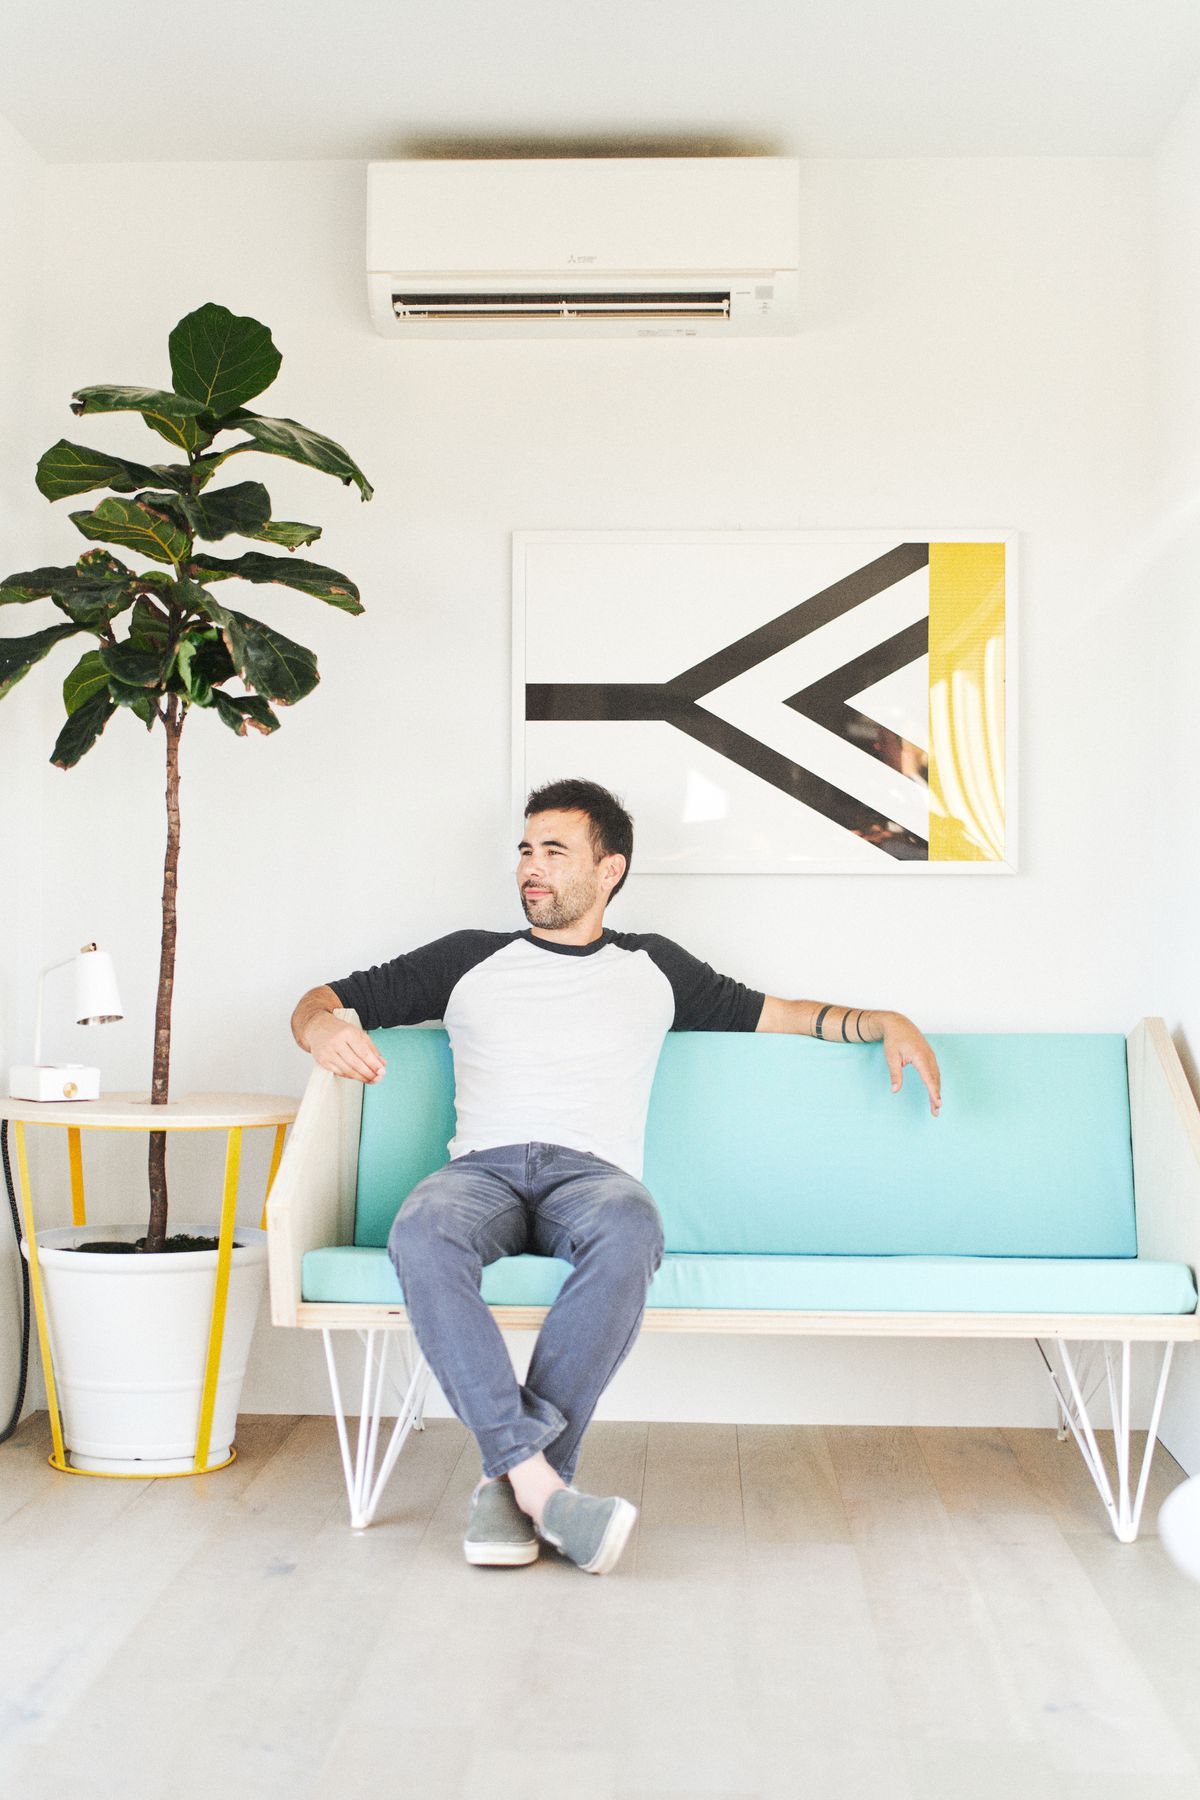 A photo of a man, Ben Uyeda, sitting on a DIY turquoise and white couch with a yellow tree coffee table on his left.